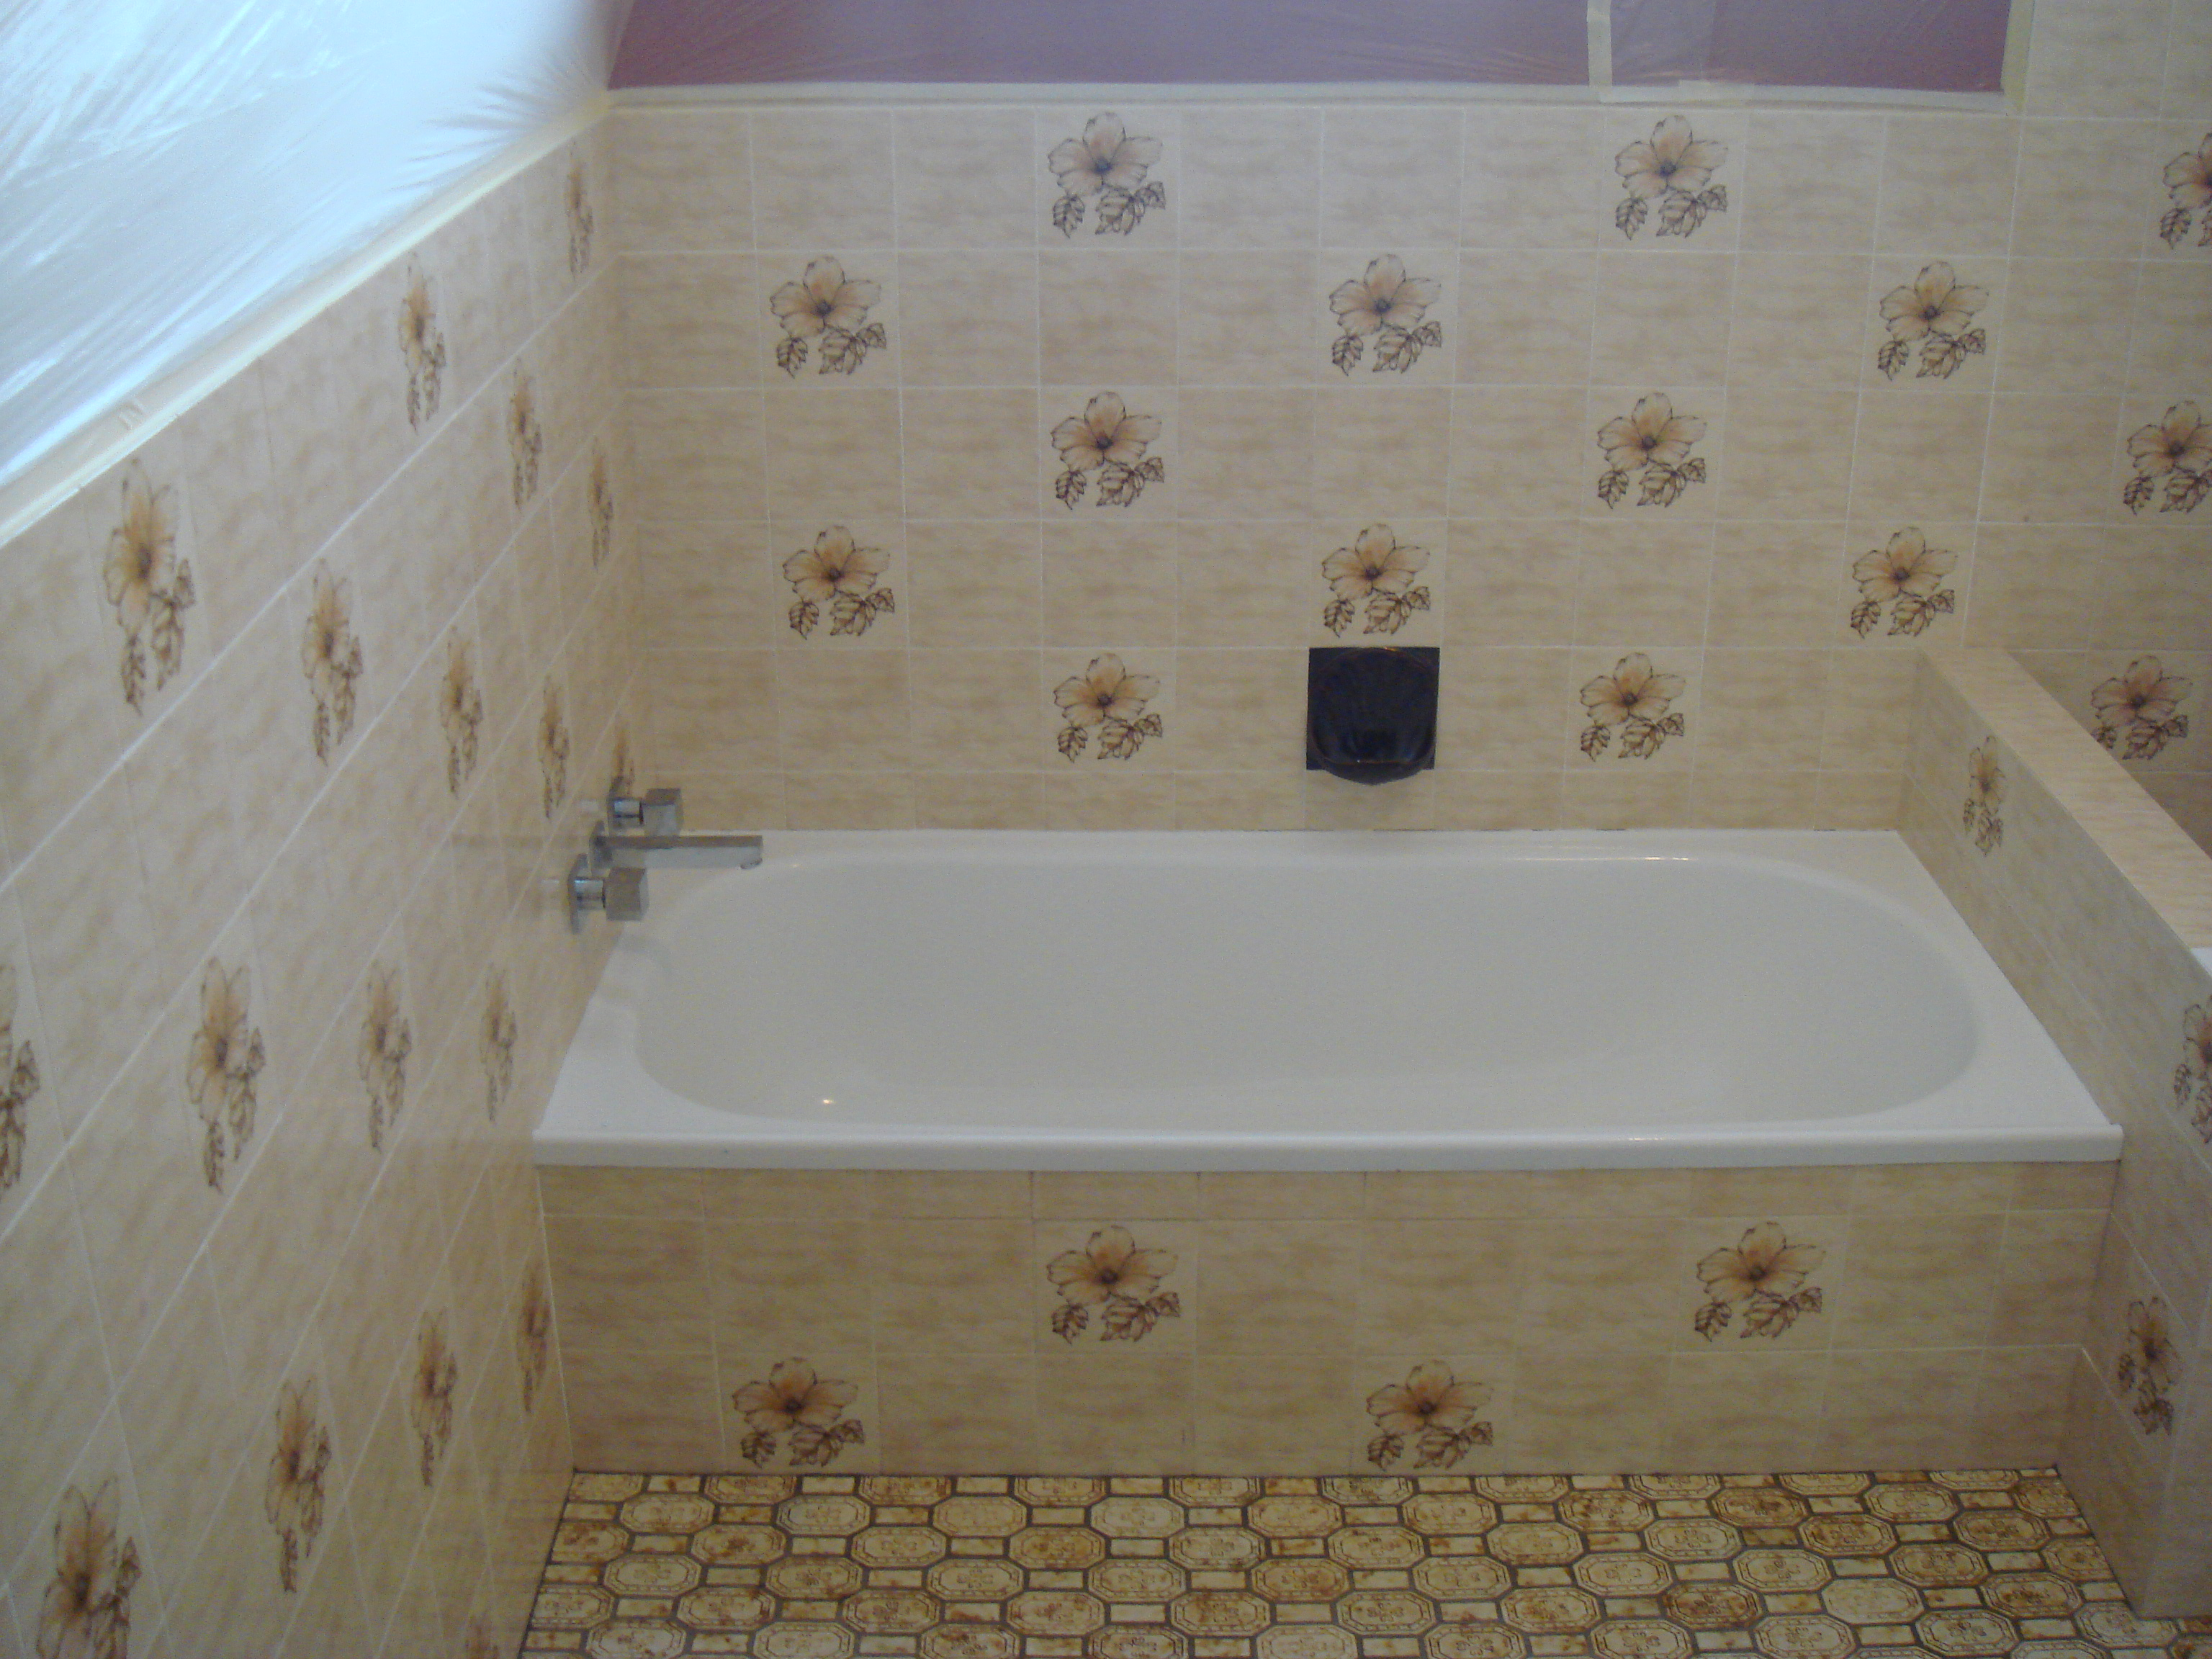 bathrooms gold coast renovations for relaxation renew kitchen and bathroom resurfacing gold coast kitchen and bathroom resurfacing brisbane